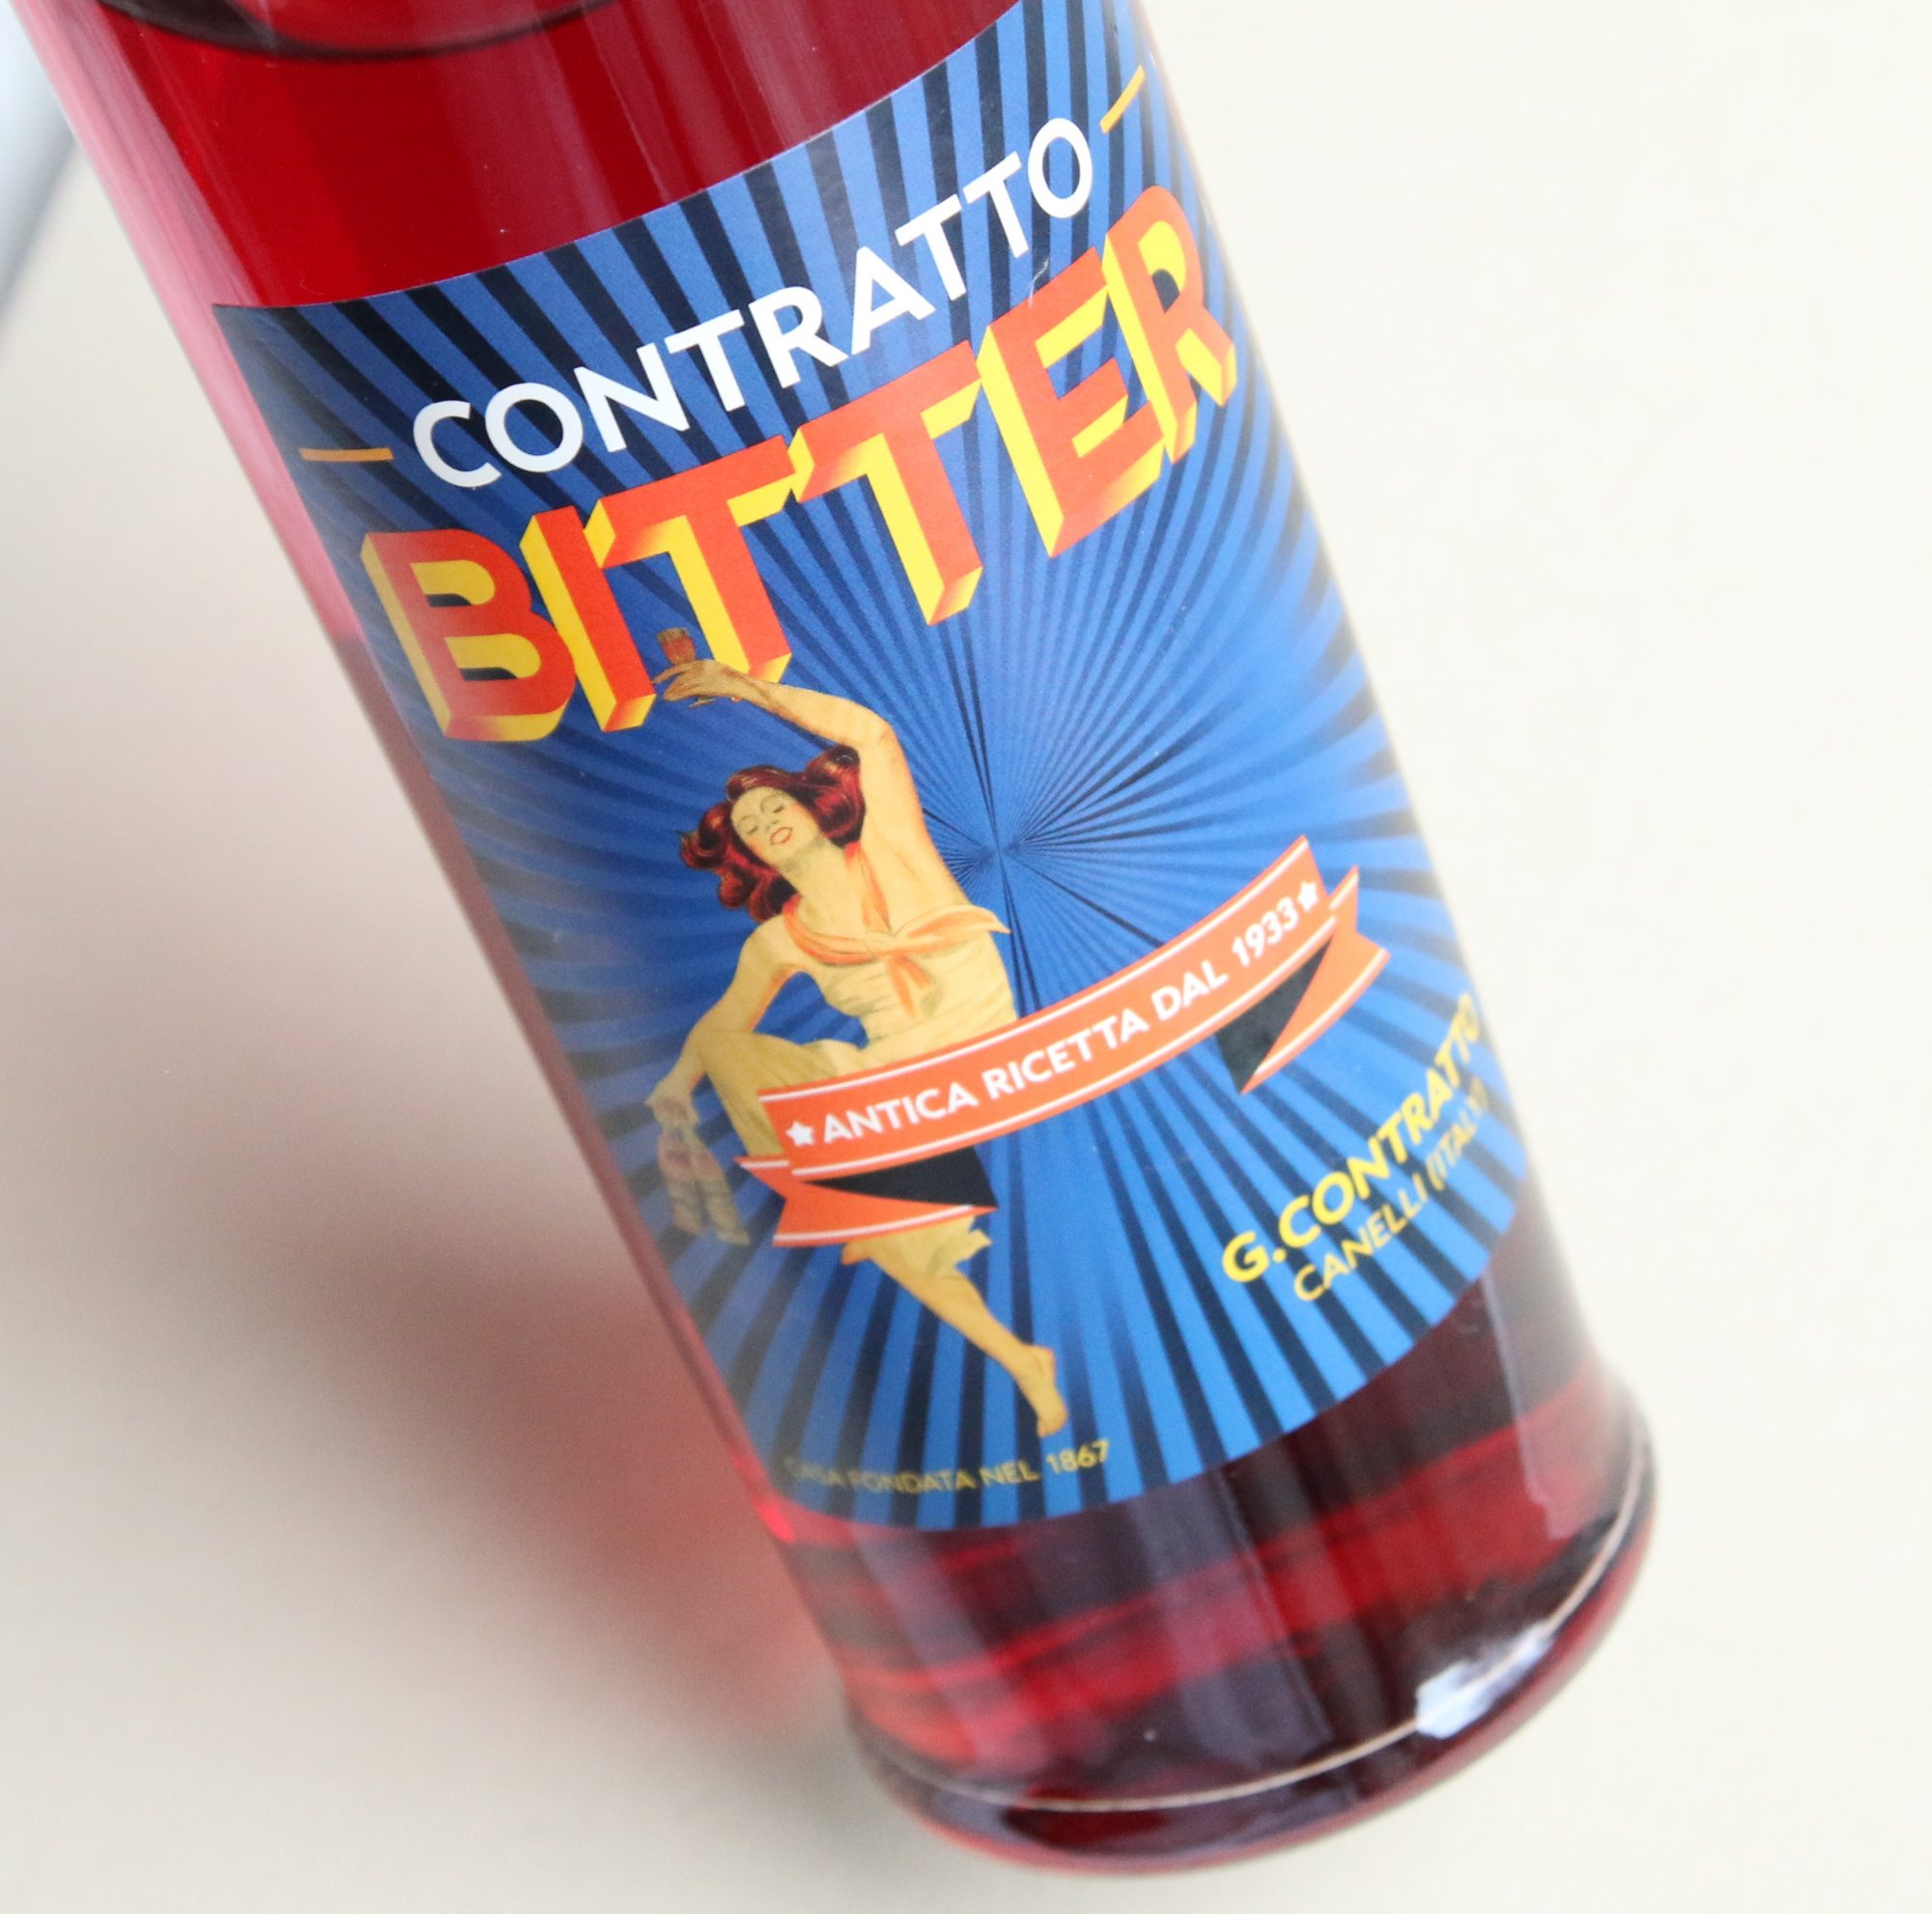 If You Like Campari You'll Love Contratto Bitter